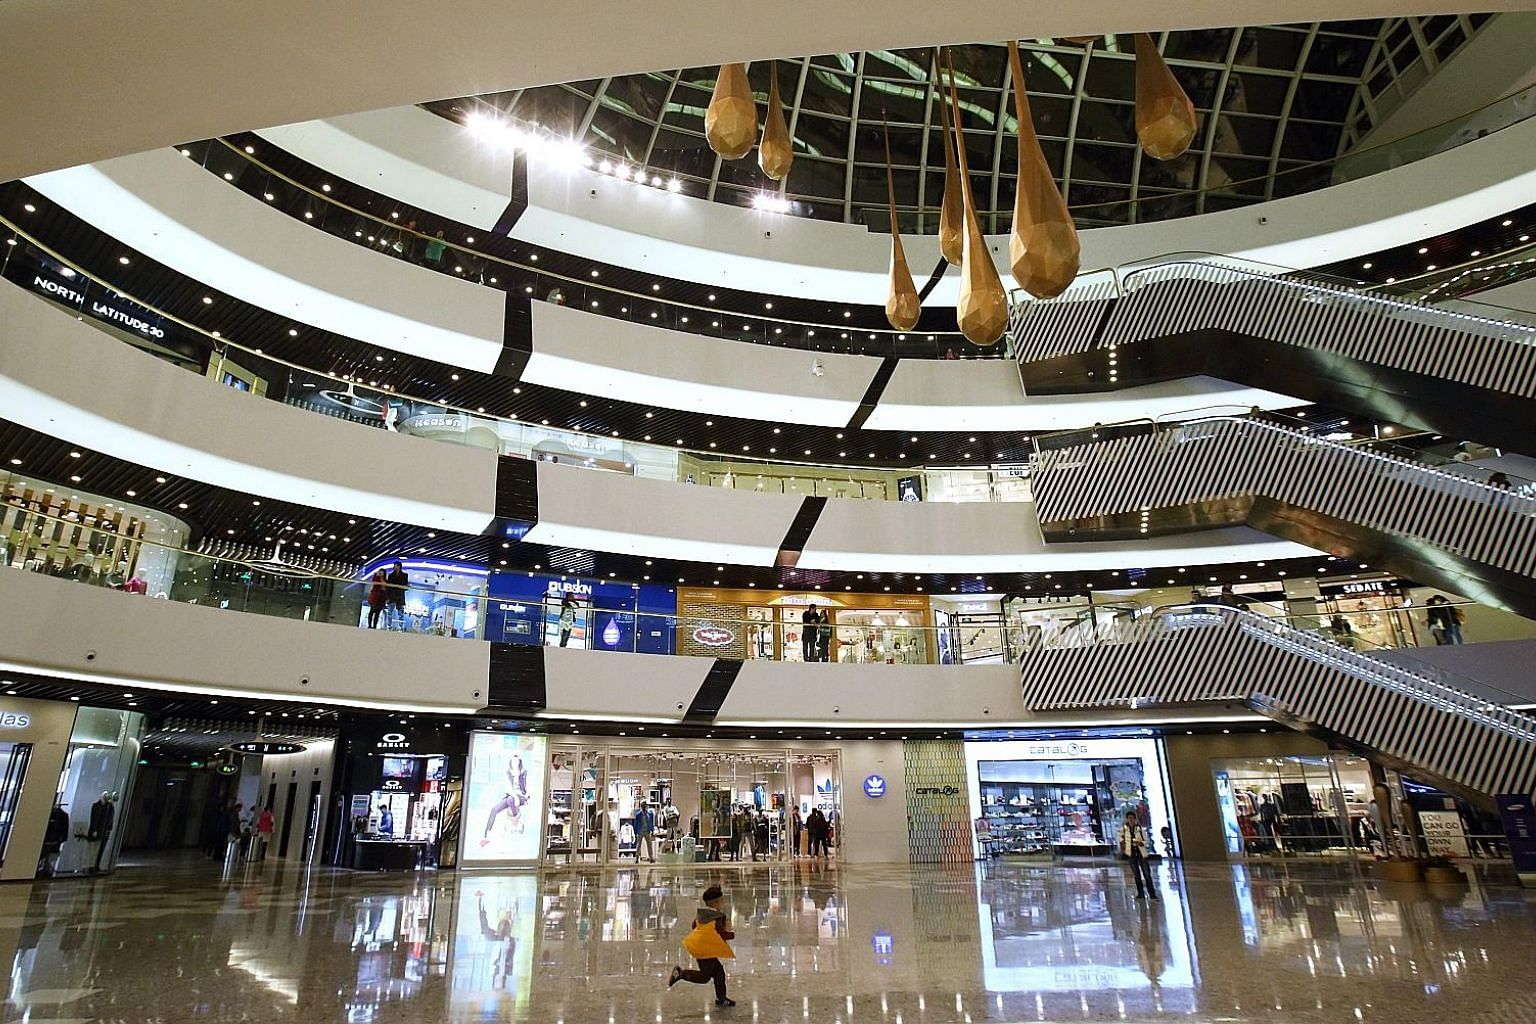 Tongzhou Wanda Plaza in Beijing, one of the malls run by Dalian Wanda Group, which has installed cameras that use behaviour-recognition technology to track shoppers' movements in its malls, such as how long a person lingers in a store and whether he